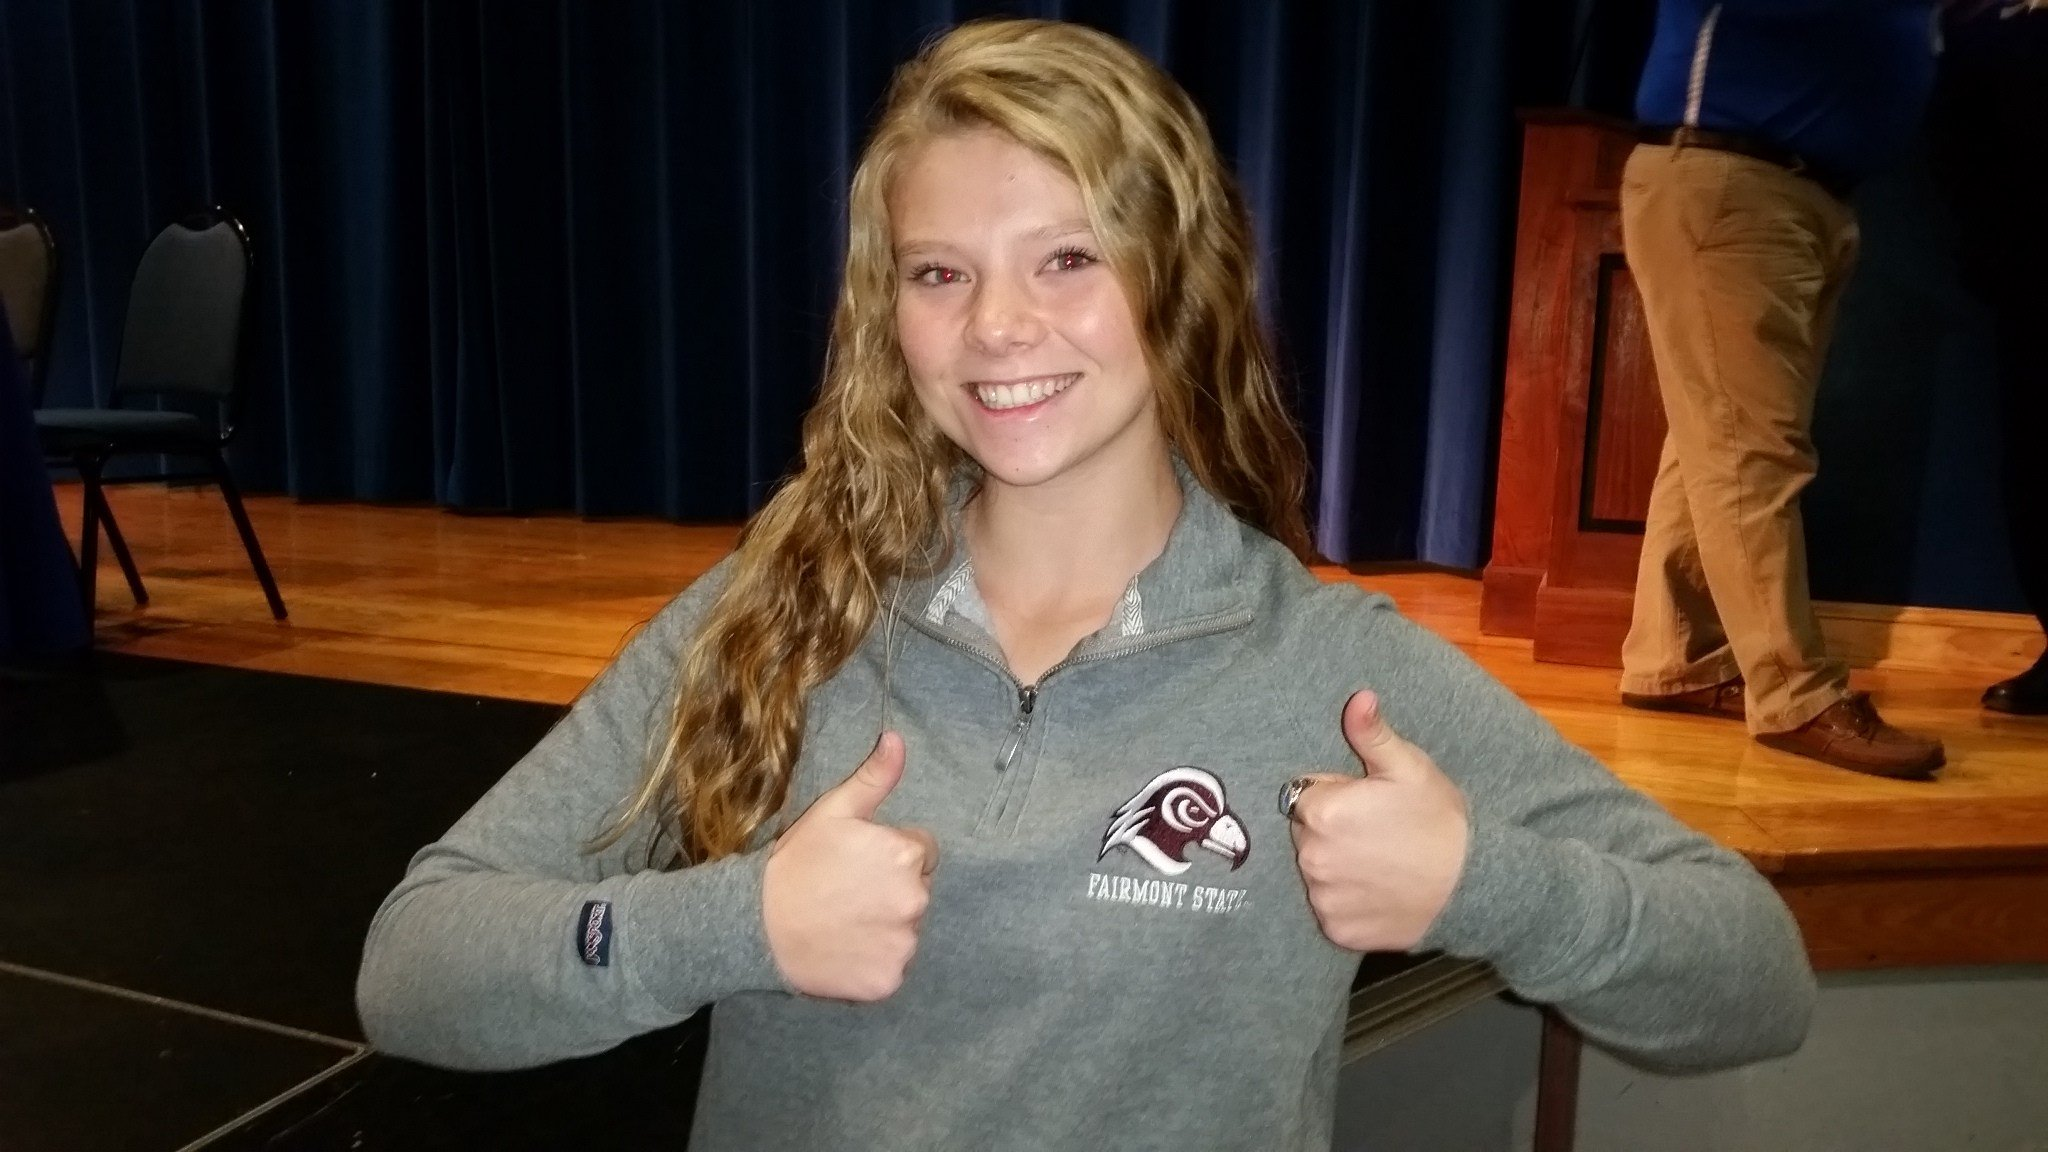 Meadow Anderson Signs with Division II school Fairmont State